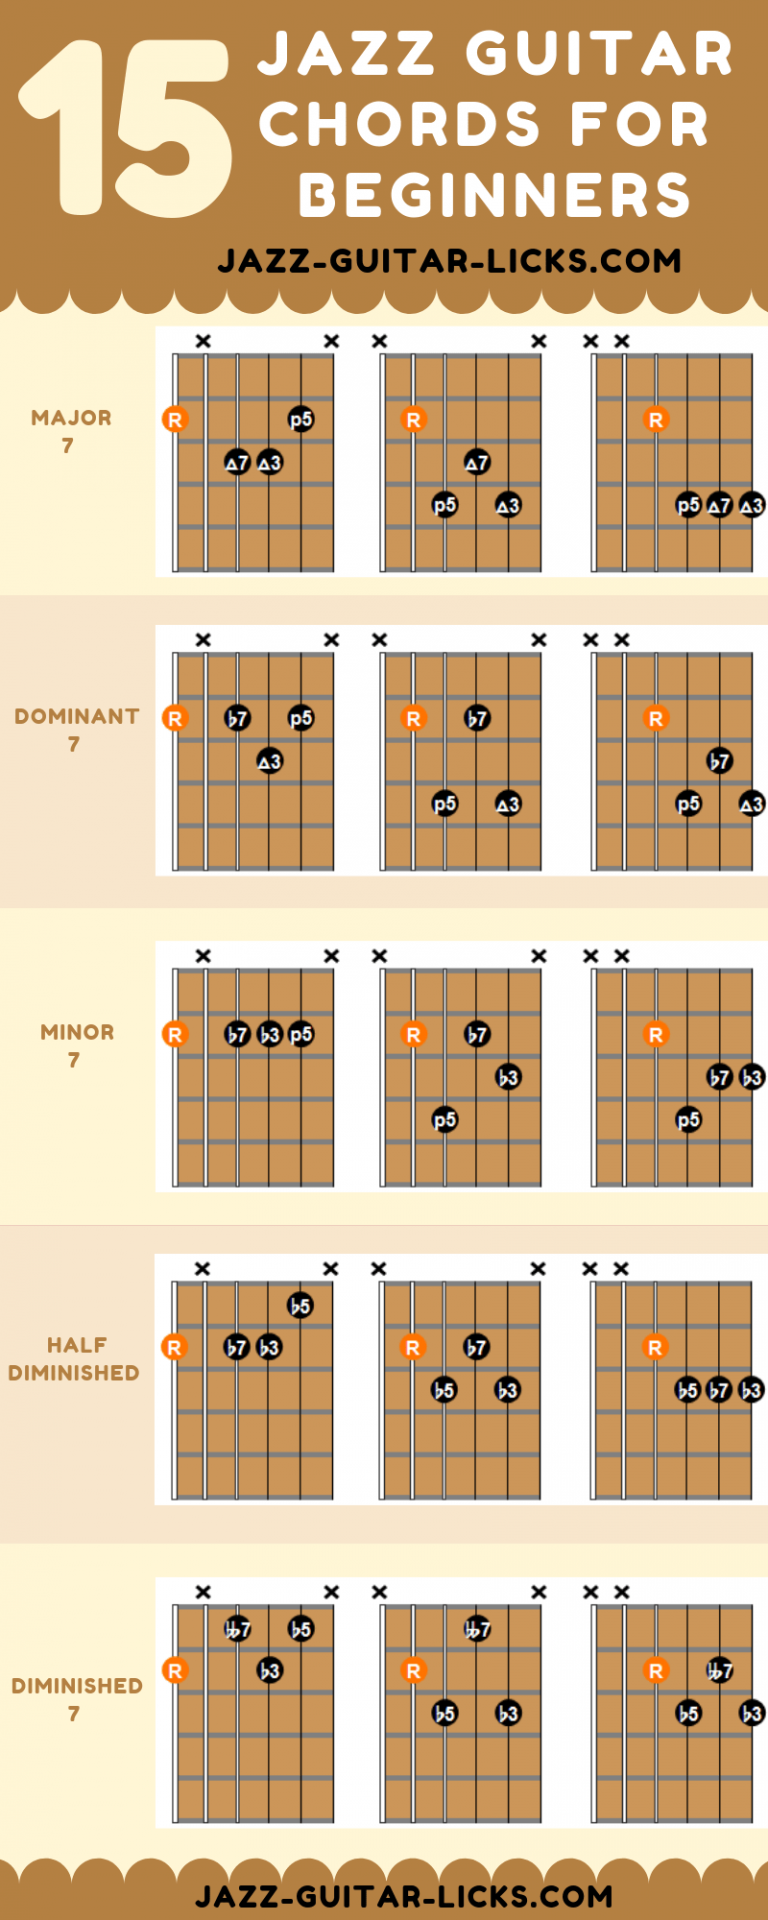 Jazz Guitar Blog - Free Music Lessons, Tutorials & Articles